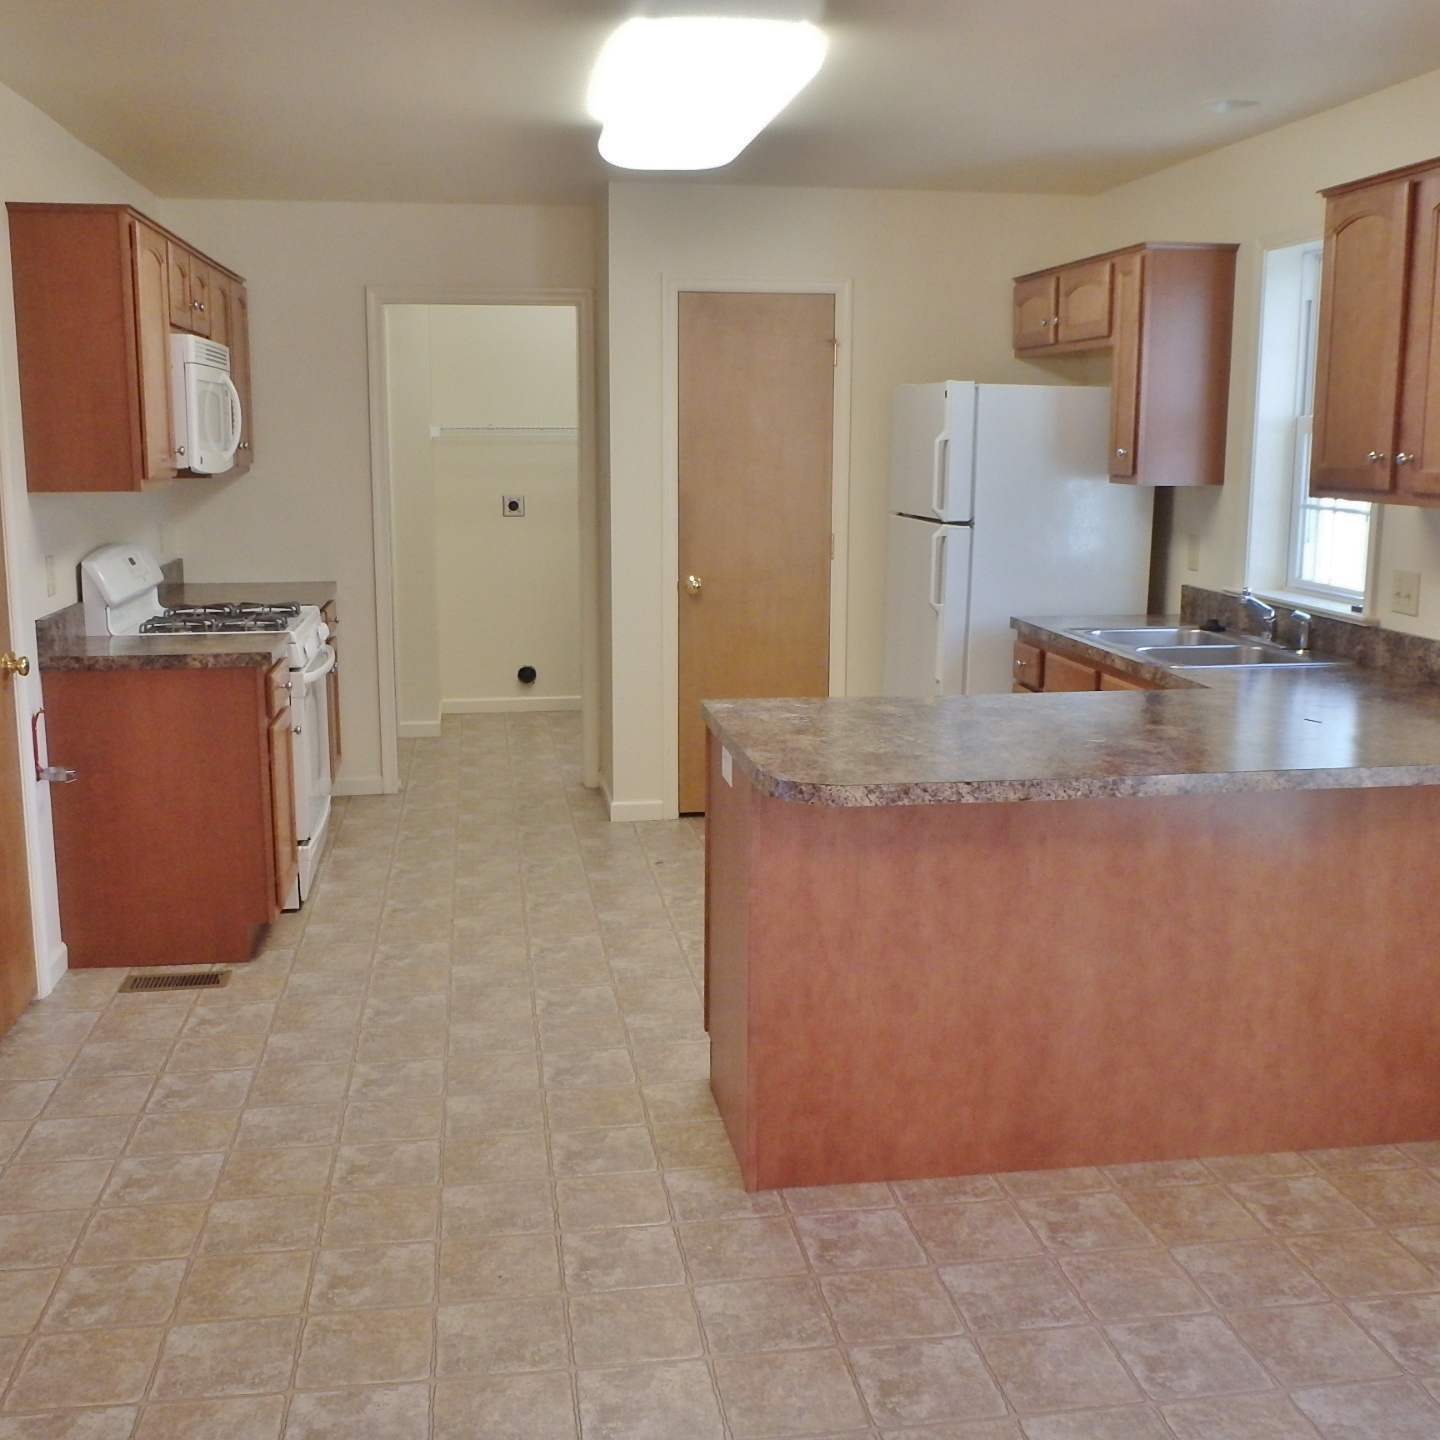 Kitchen photo of the 3-bedroom house for rent at 112 McKivison Court.